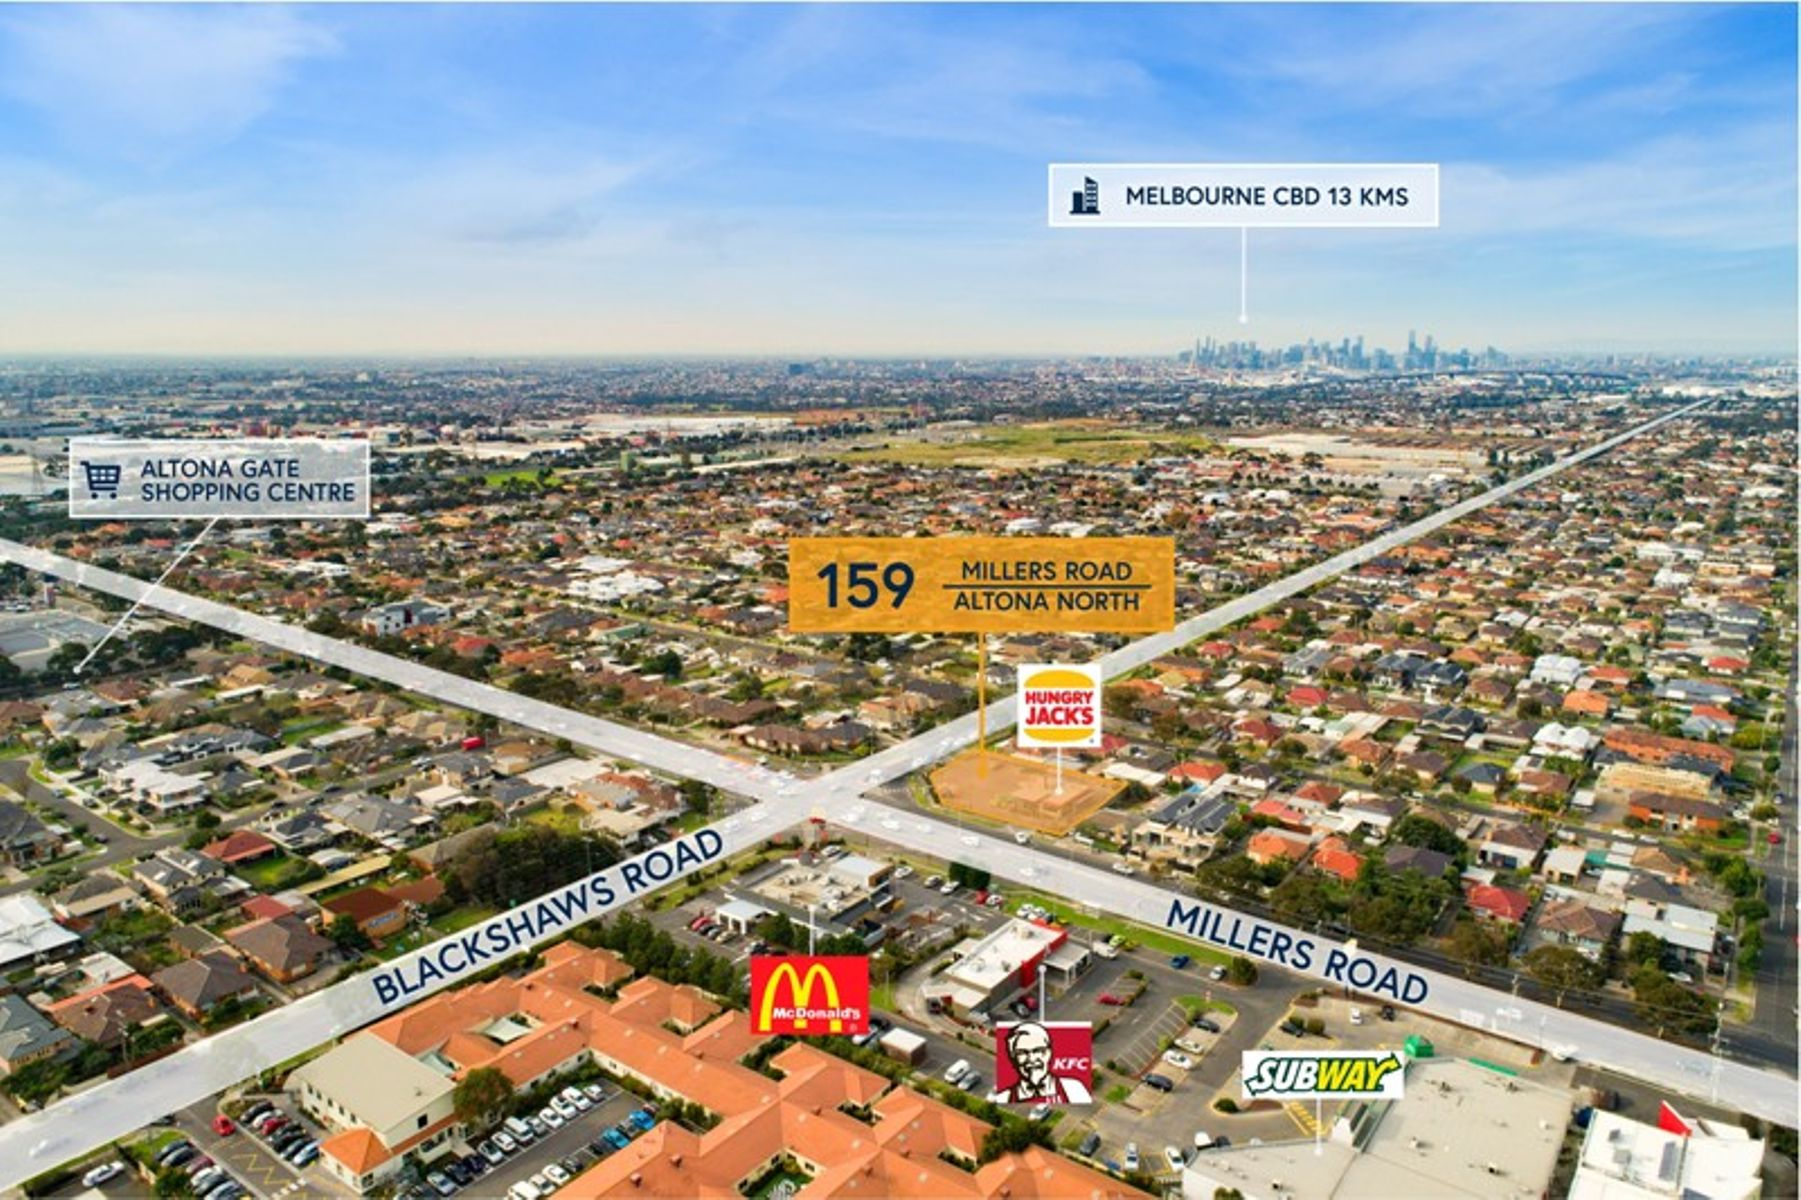 TES20339 581 Millers Rd Altona North   Overlay4 PROOF 2